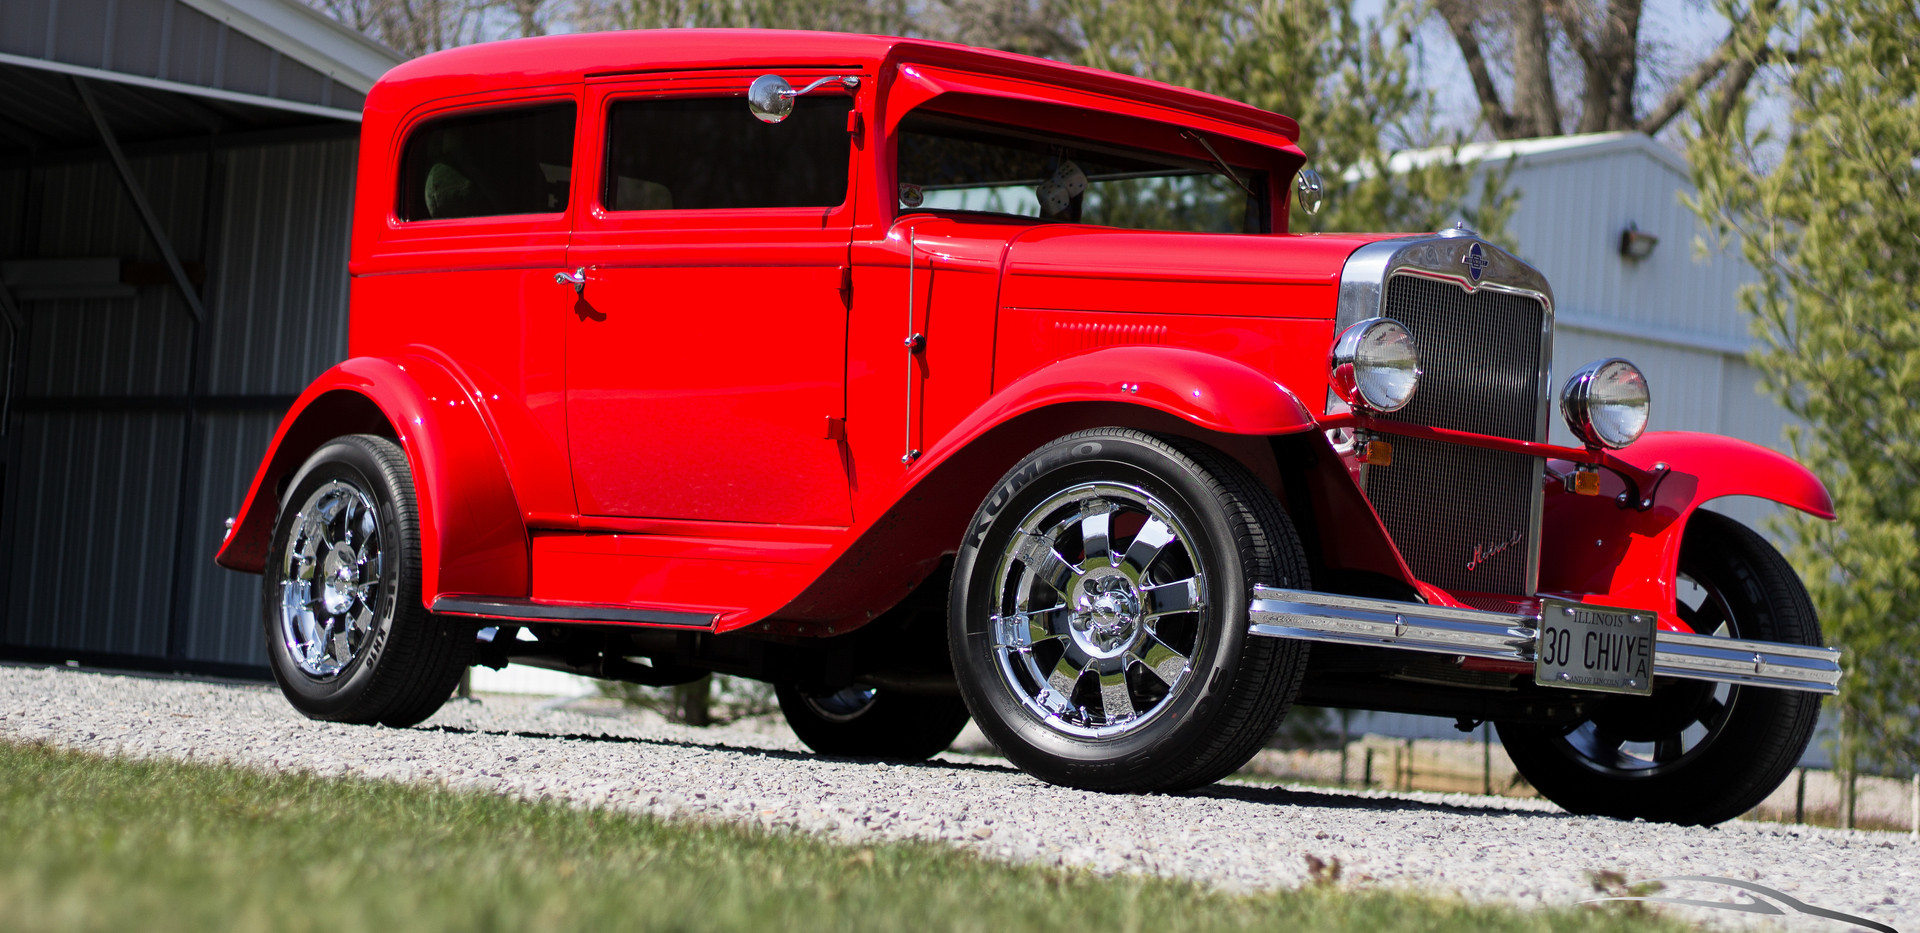 1930 Chevy 2 Door Sedan